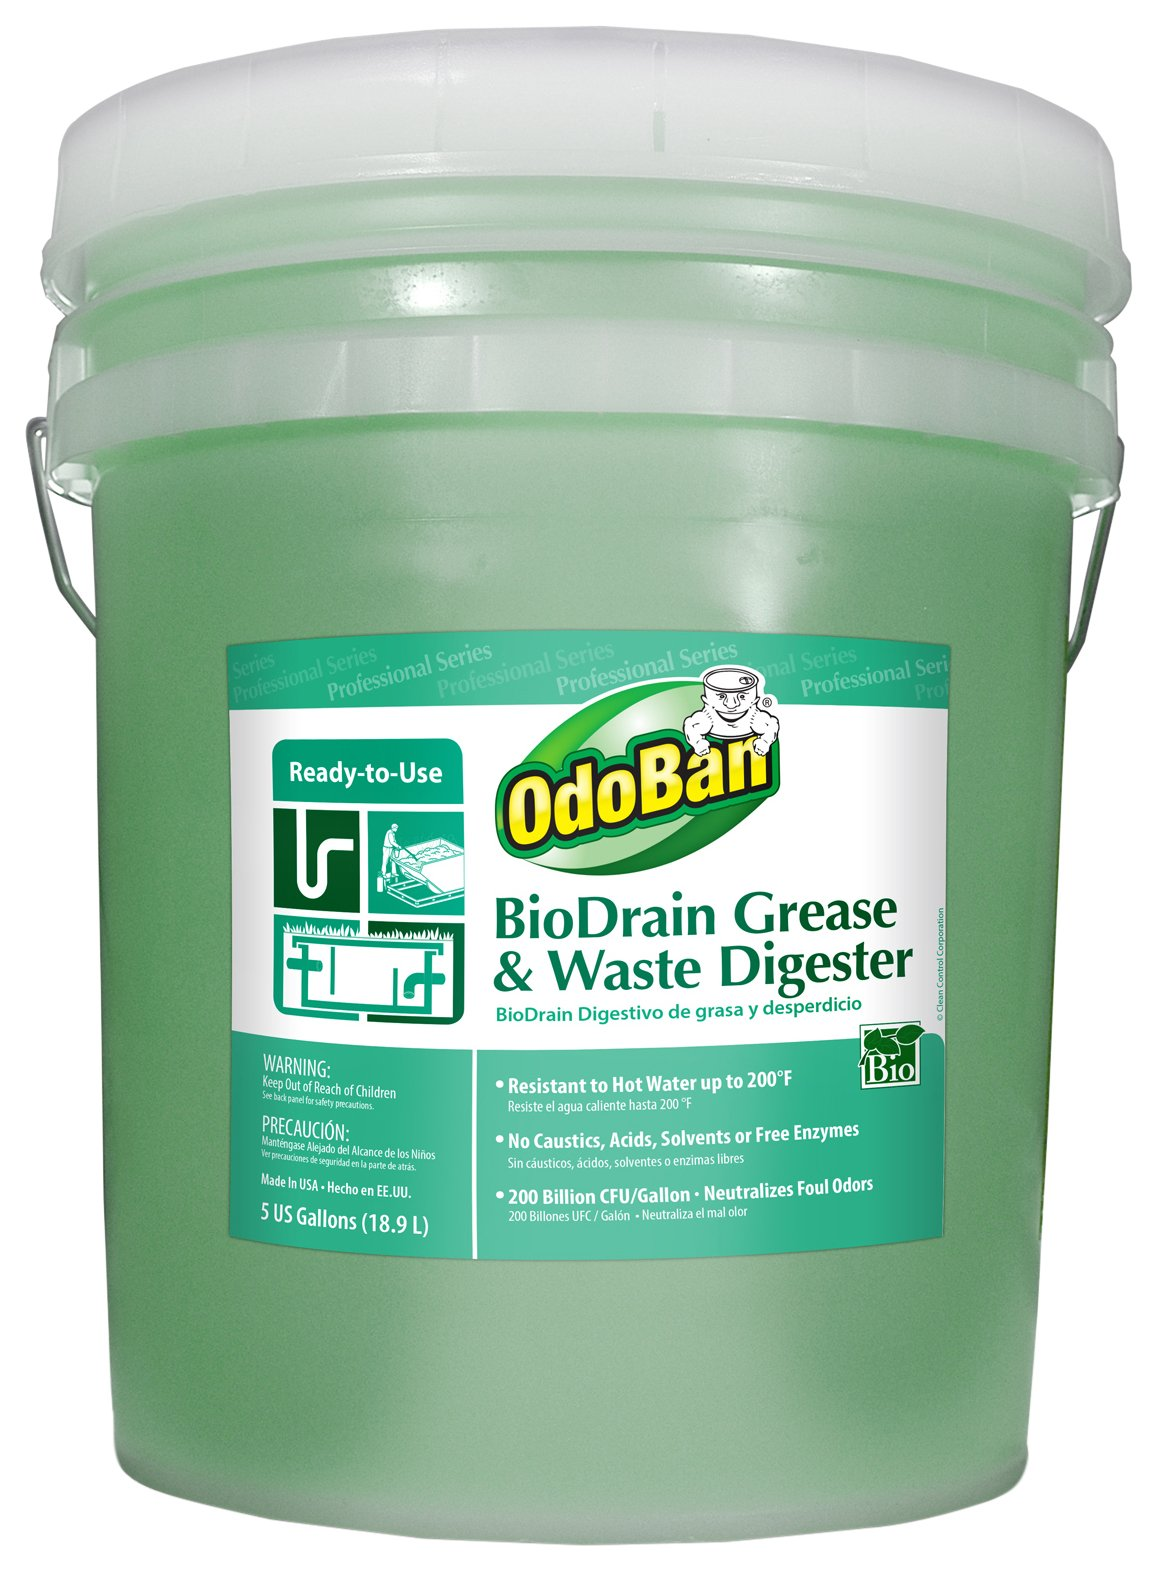 OdoBan 928062-5G BioDrain Grease and Waste Digester Pail, 5 gal